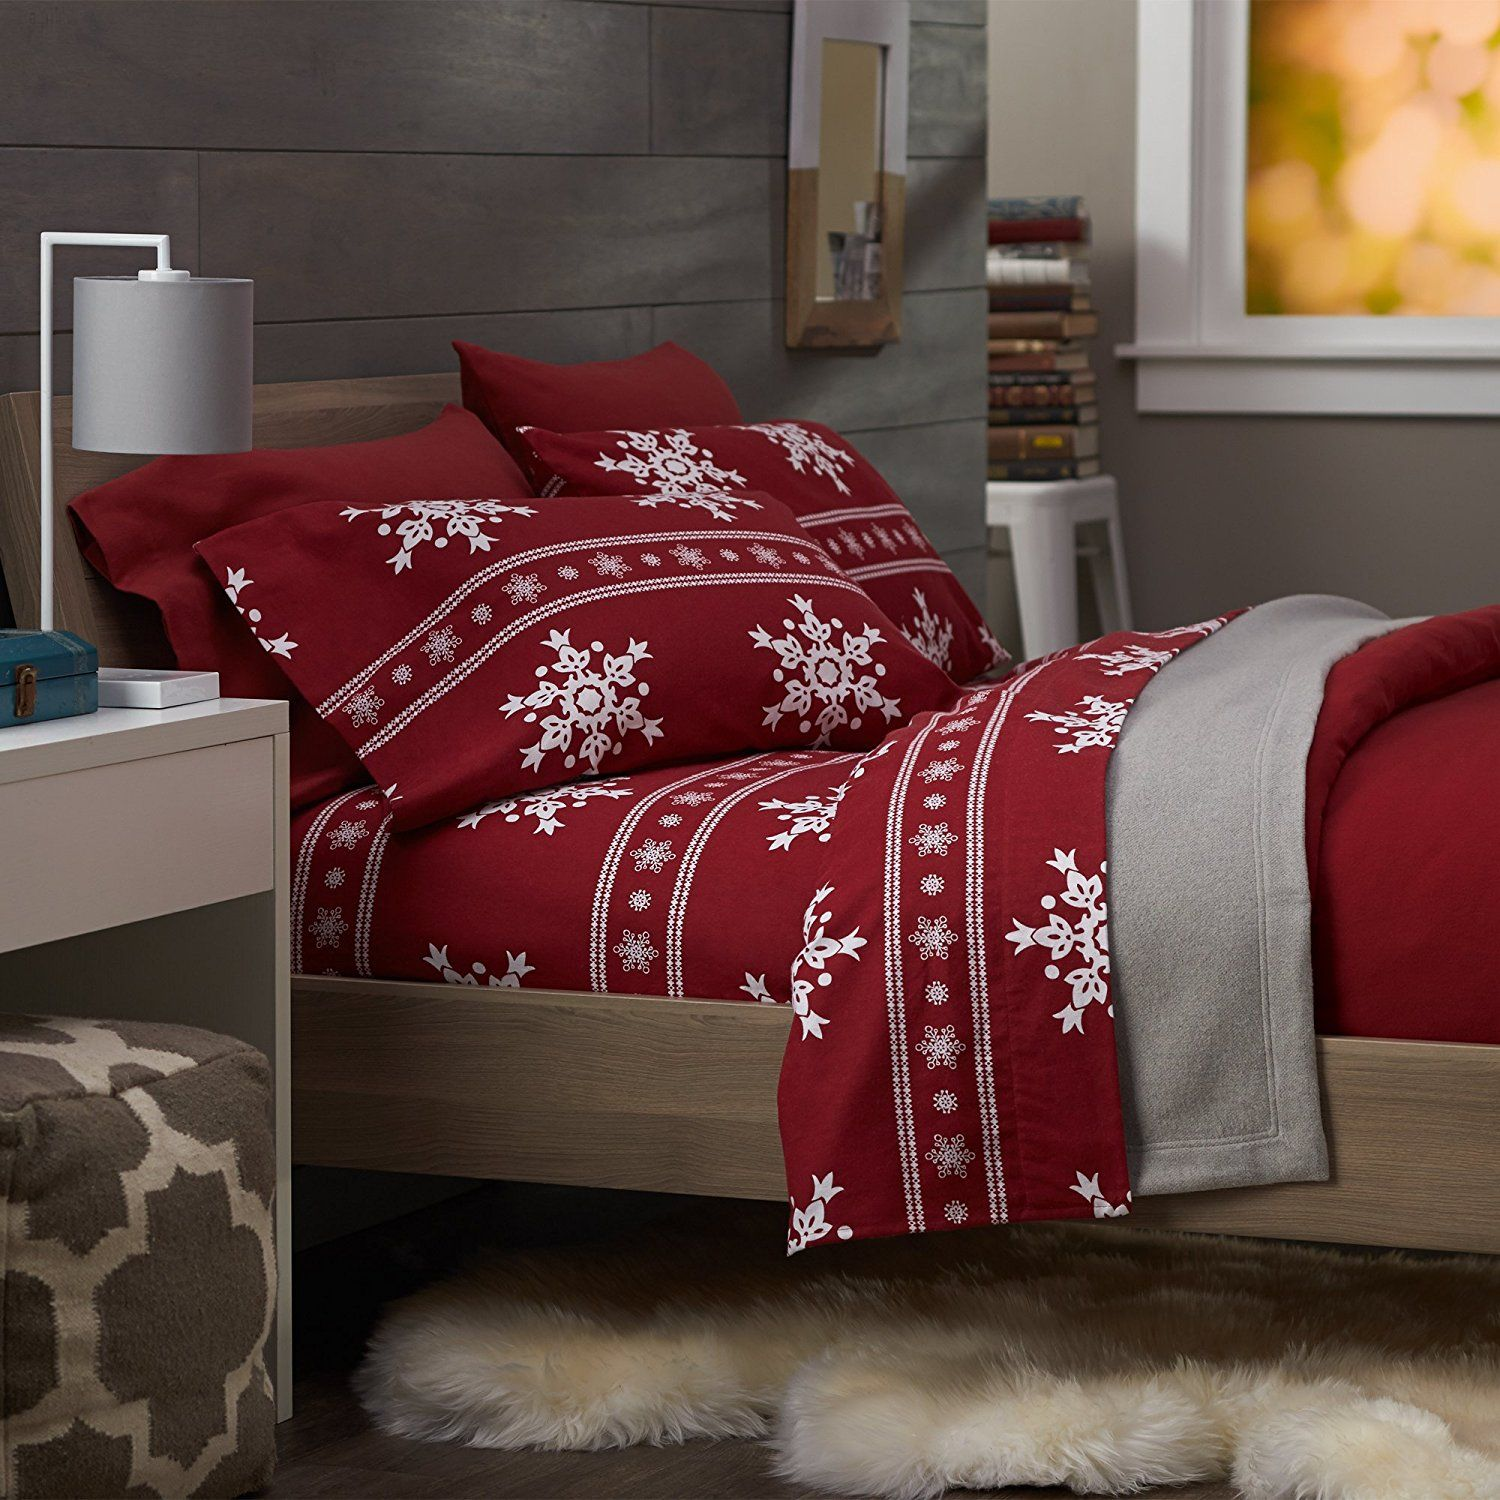 Red flannel sheets  There are tons of bed sheet sets out there in festive holiday prints